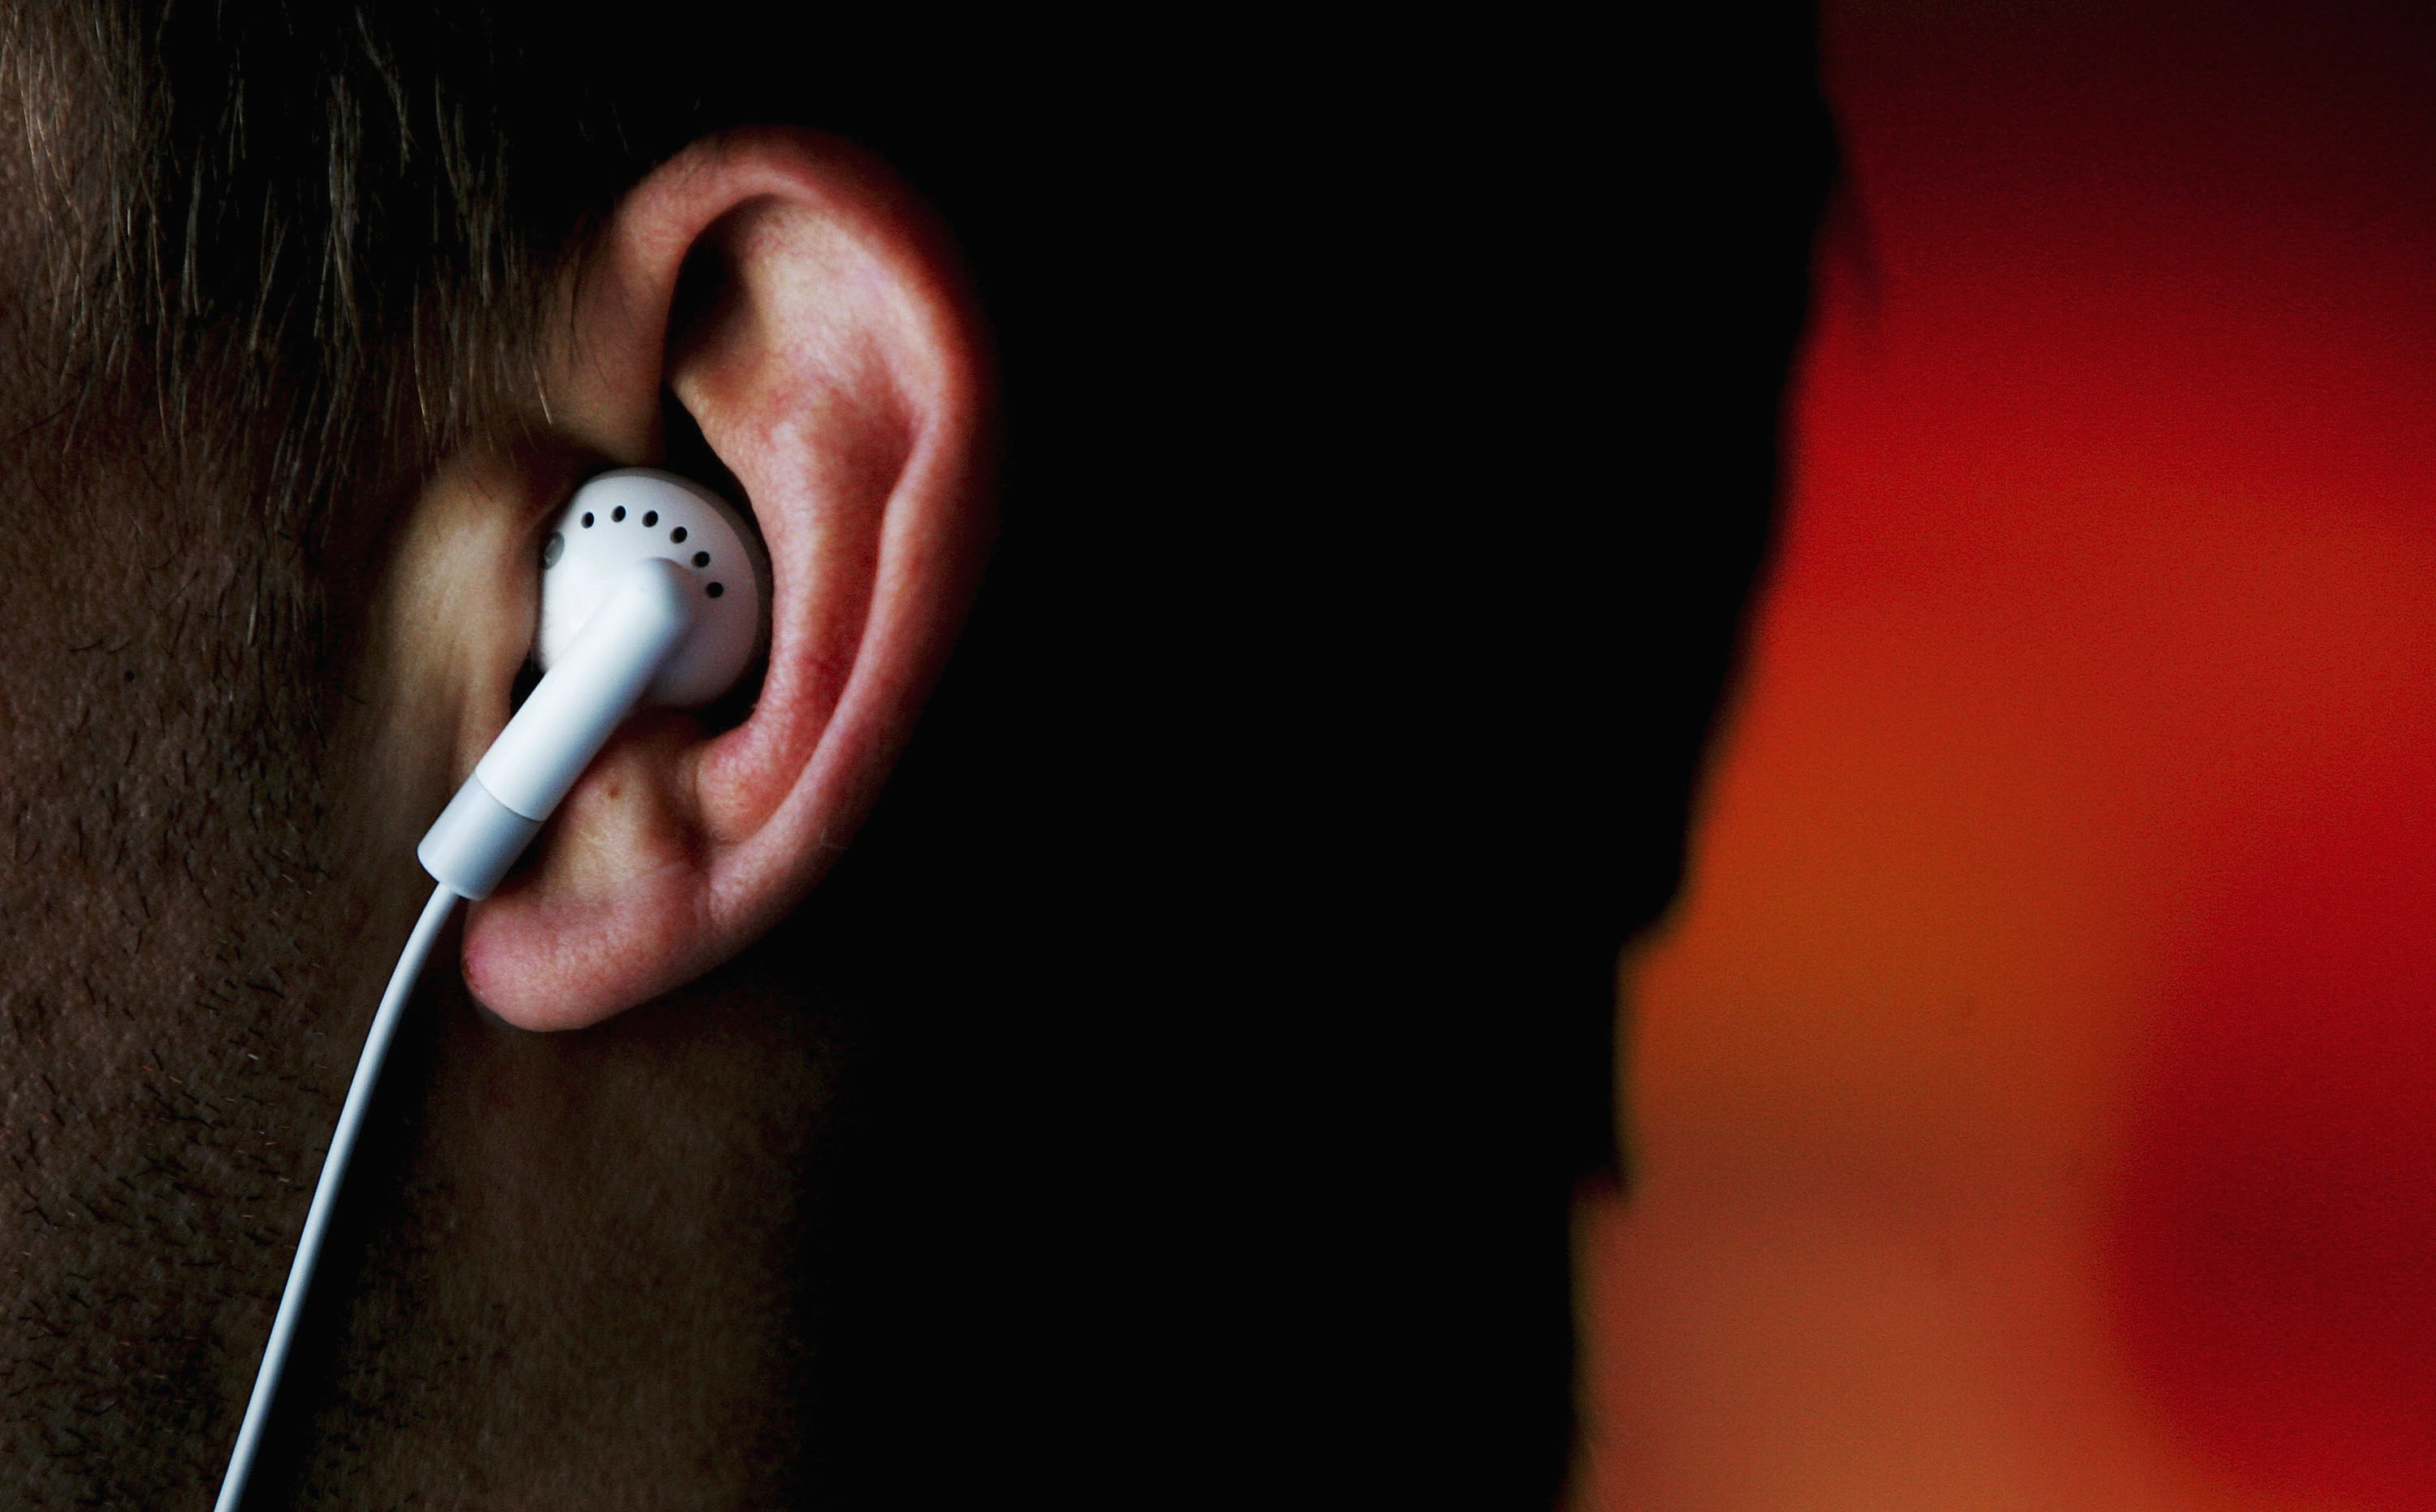 iPods Linked To Hearing Problems